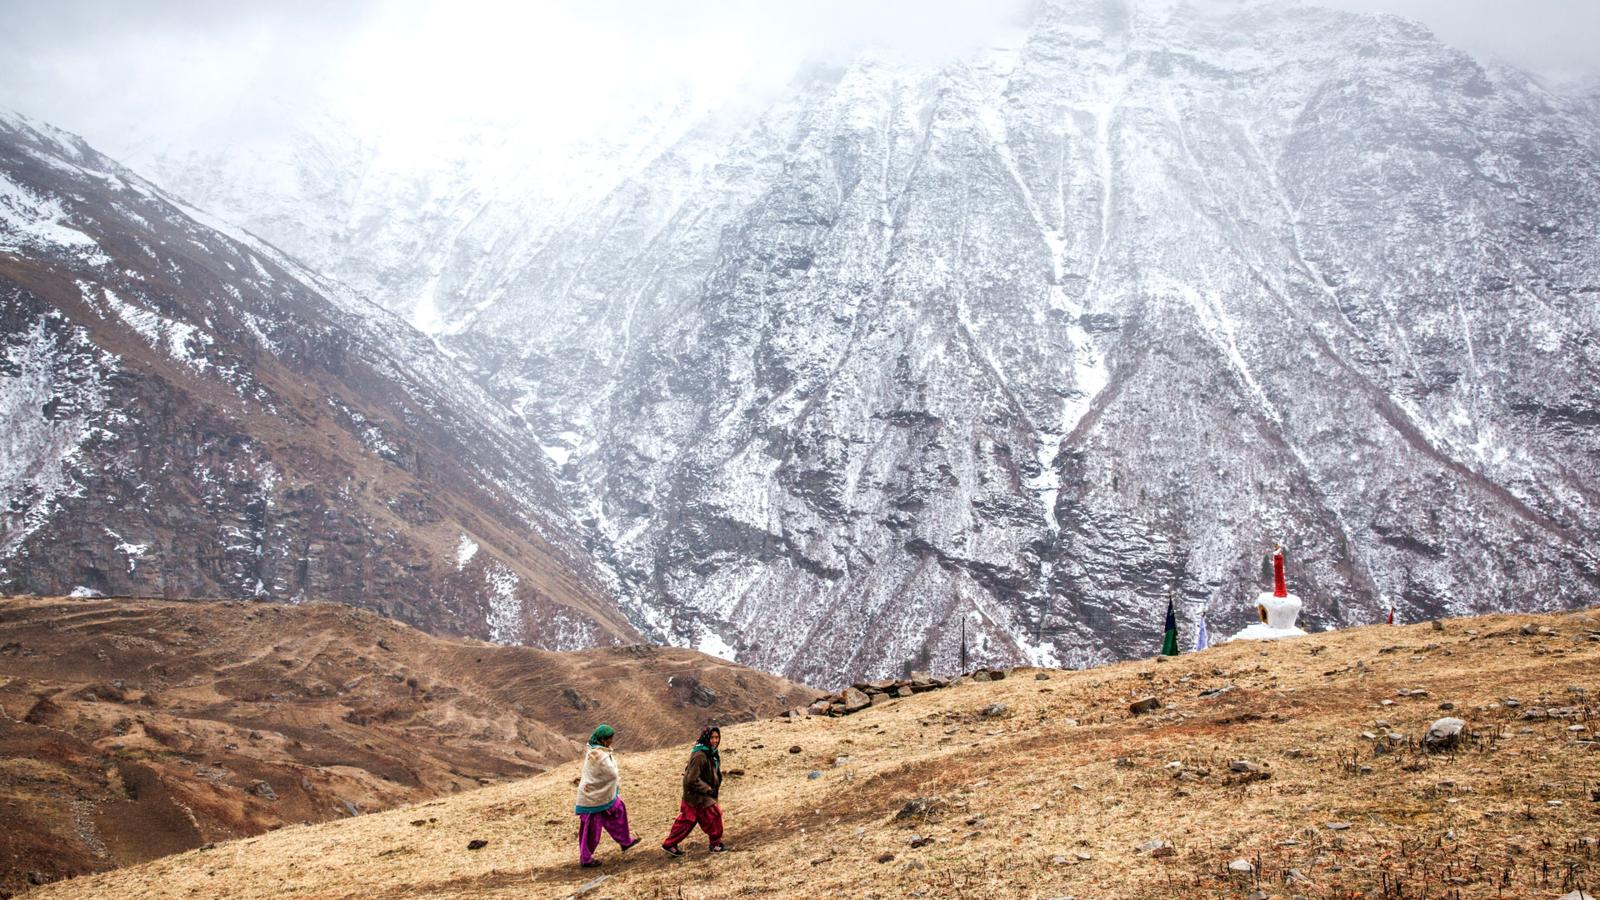 A Perilous Ride to a Remote Valley